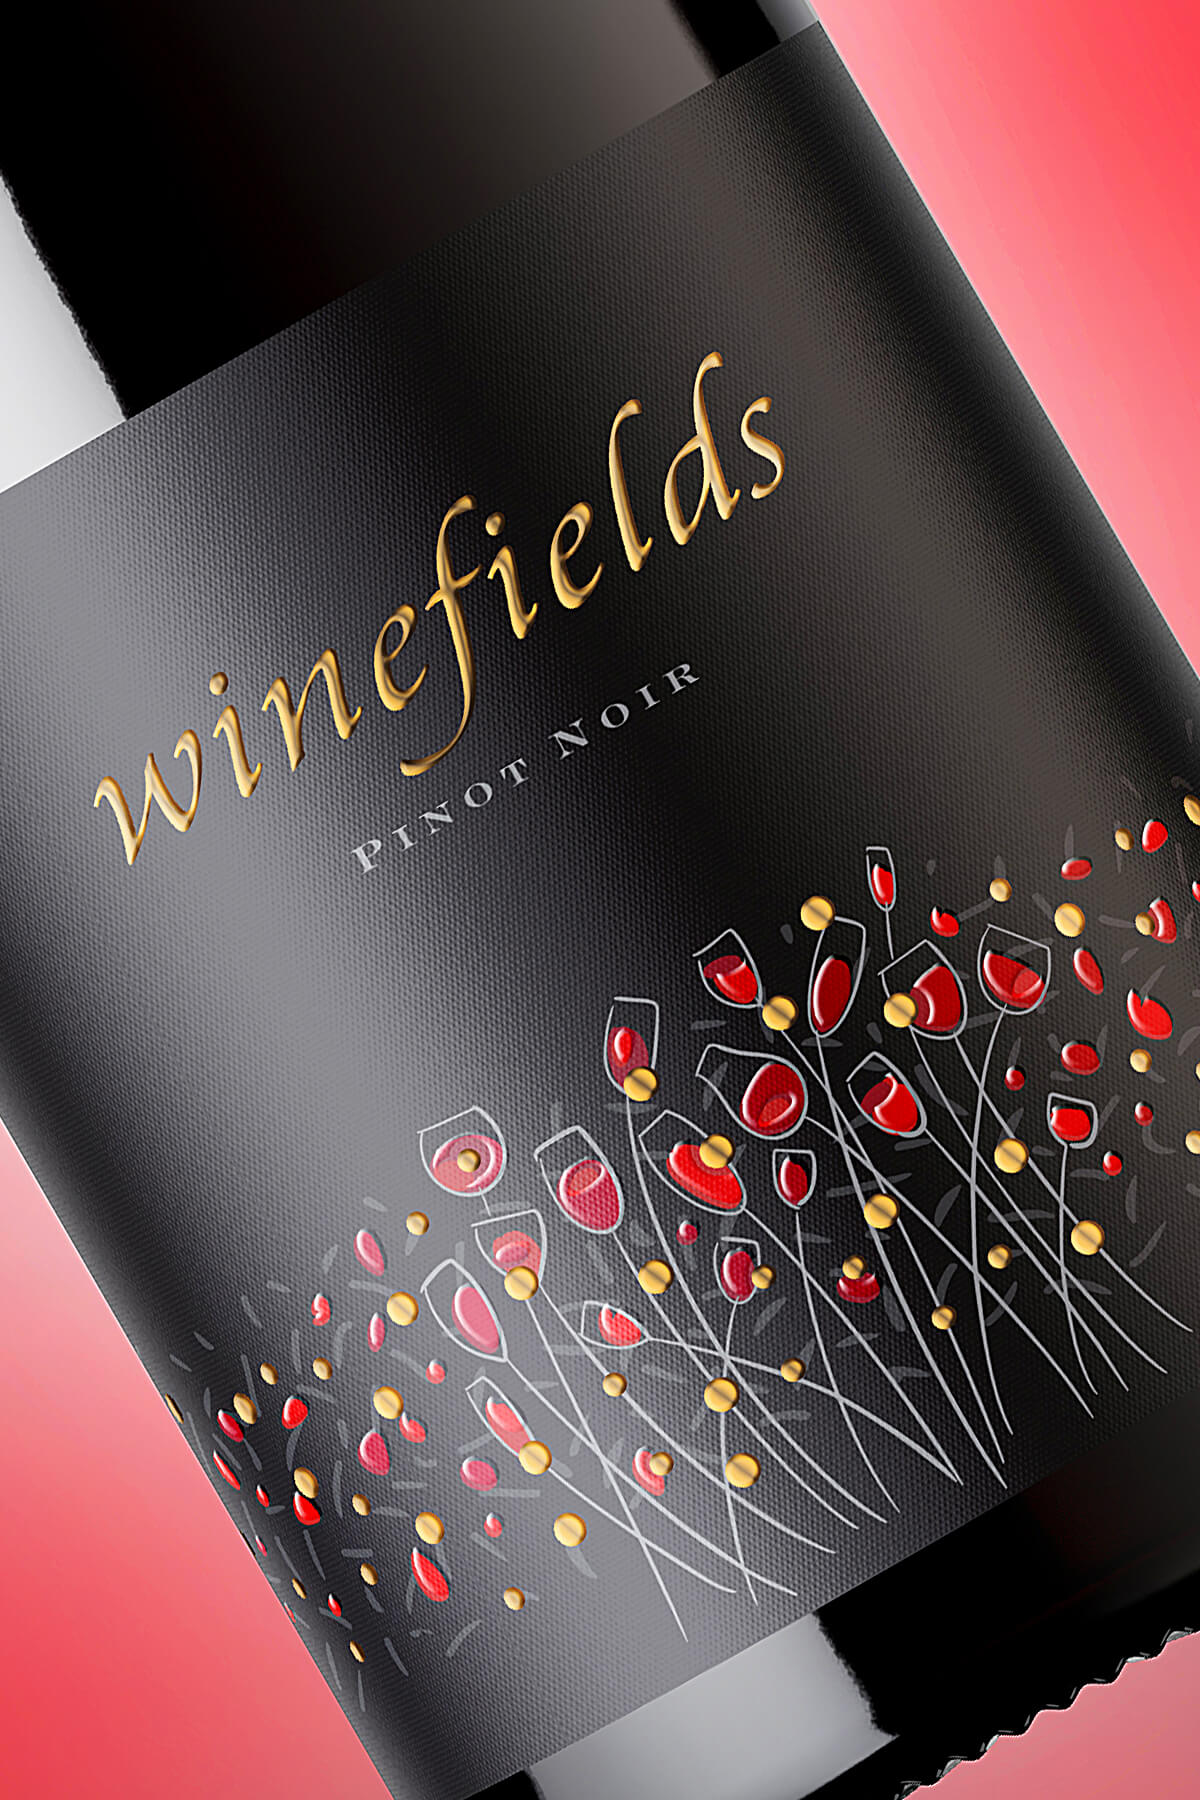 Winefields – A Romantic Brand Concept for A New Wine Range